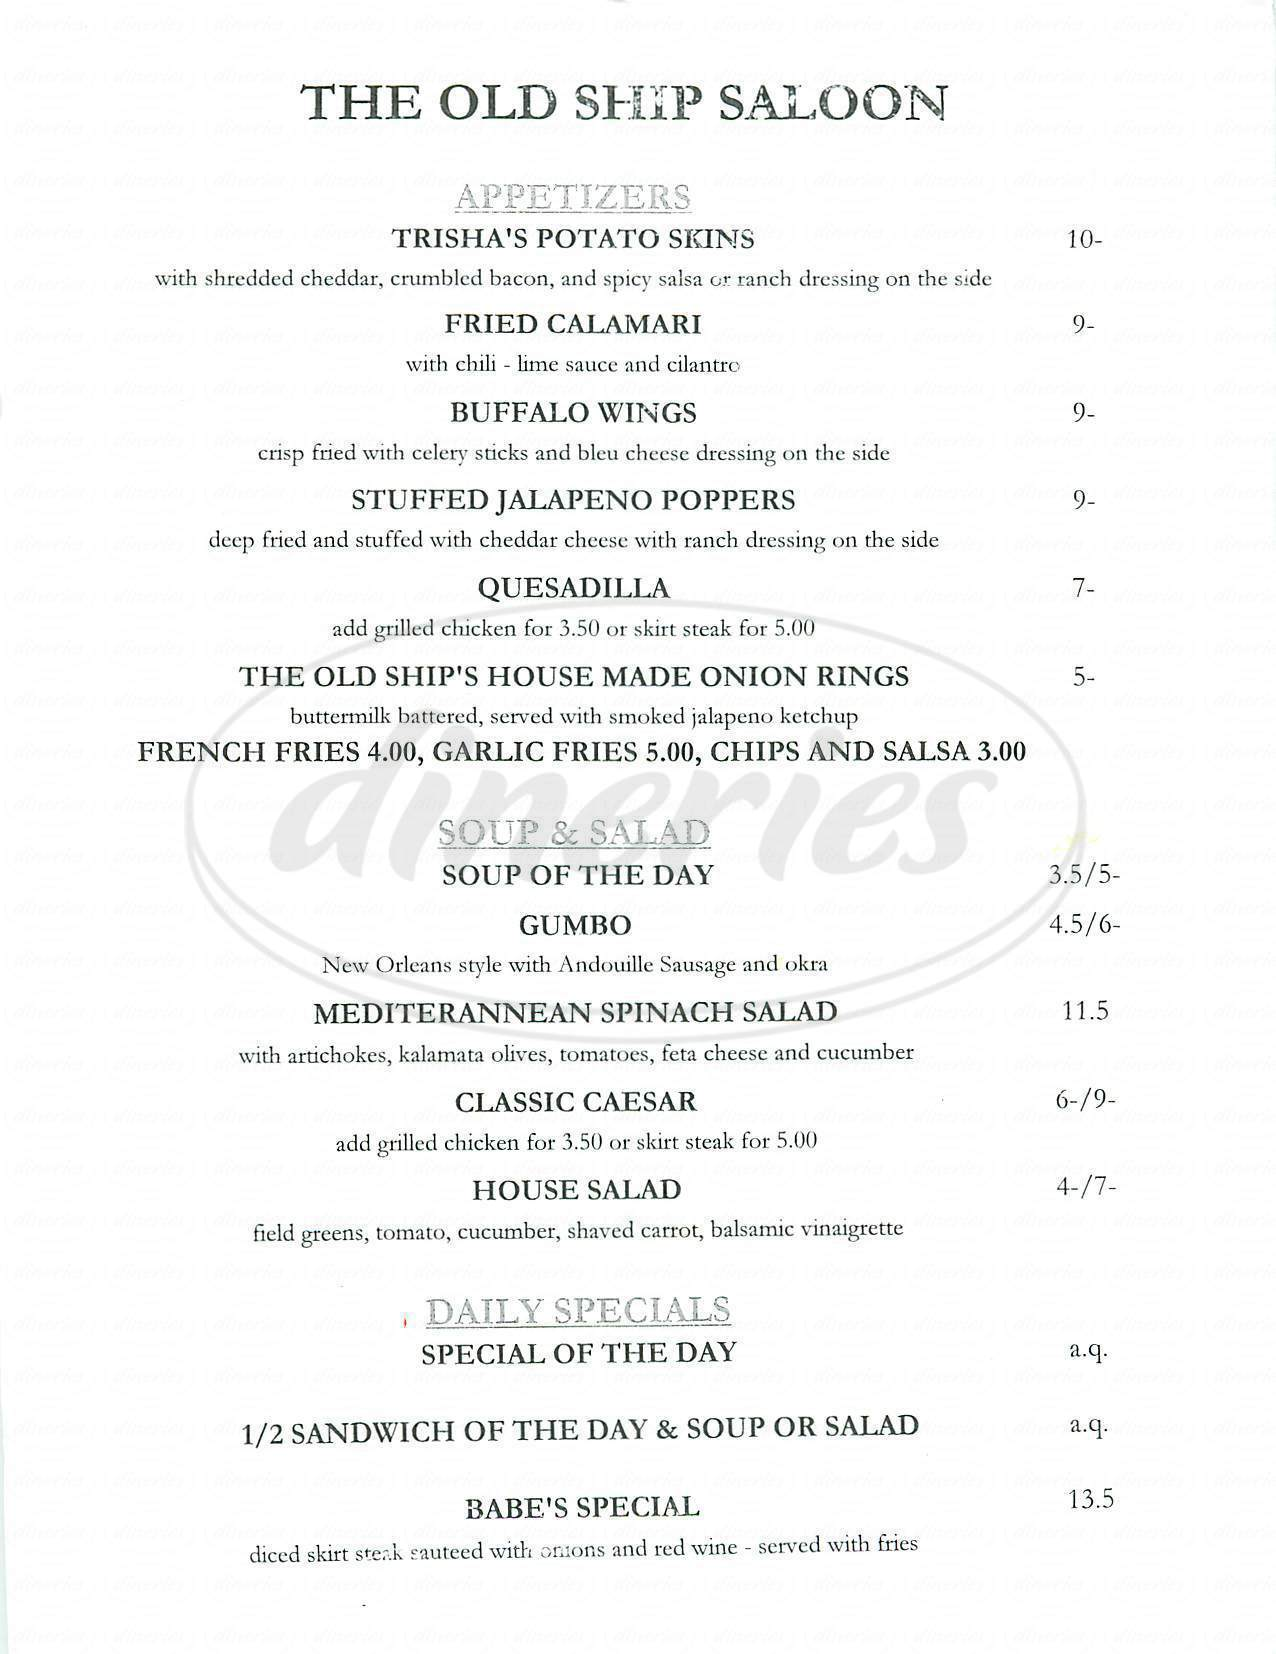 menu for The Old Ship Saloon